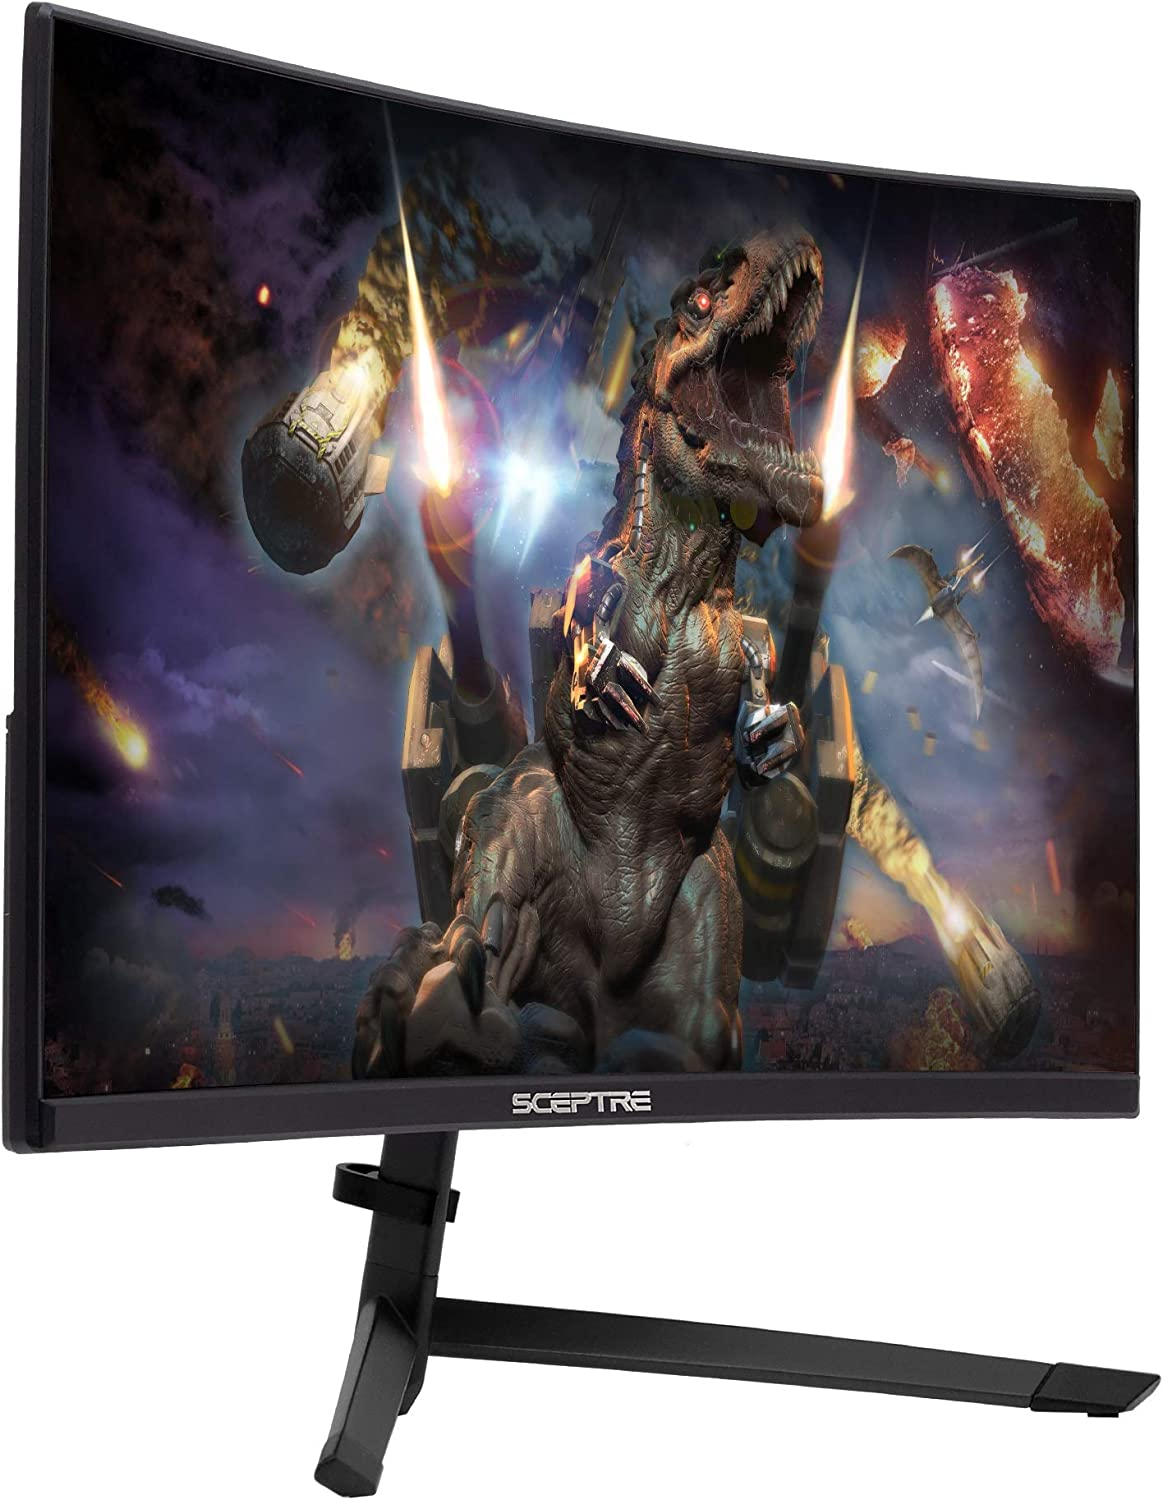 Sceptre 24-Inch Curved 144Hz Gaming LED Monitor